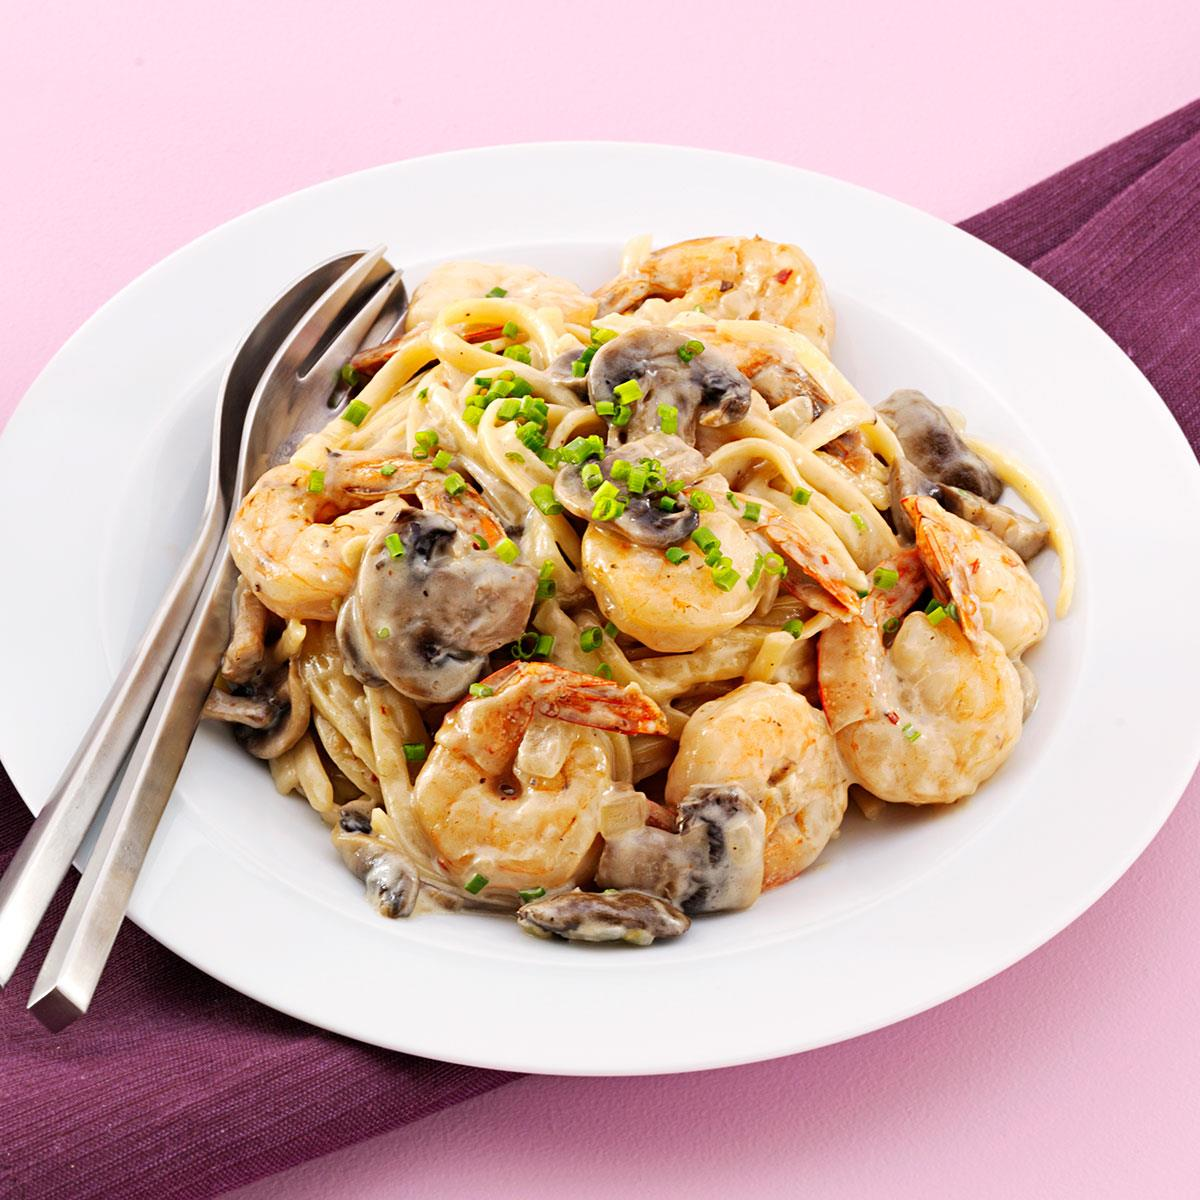 Shrimp in cream sauce: a variety of flavors